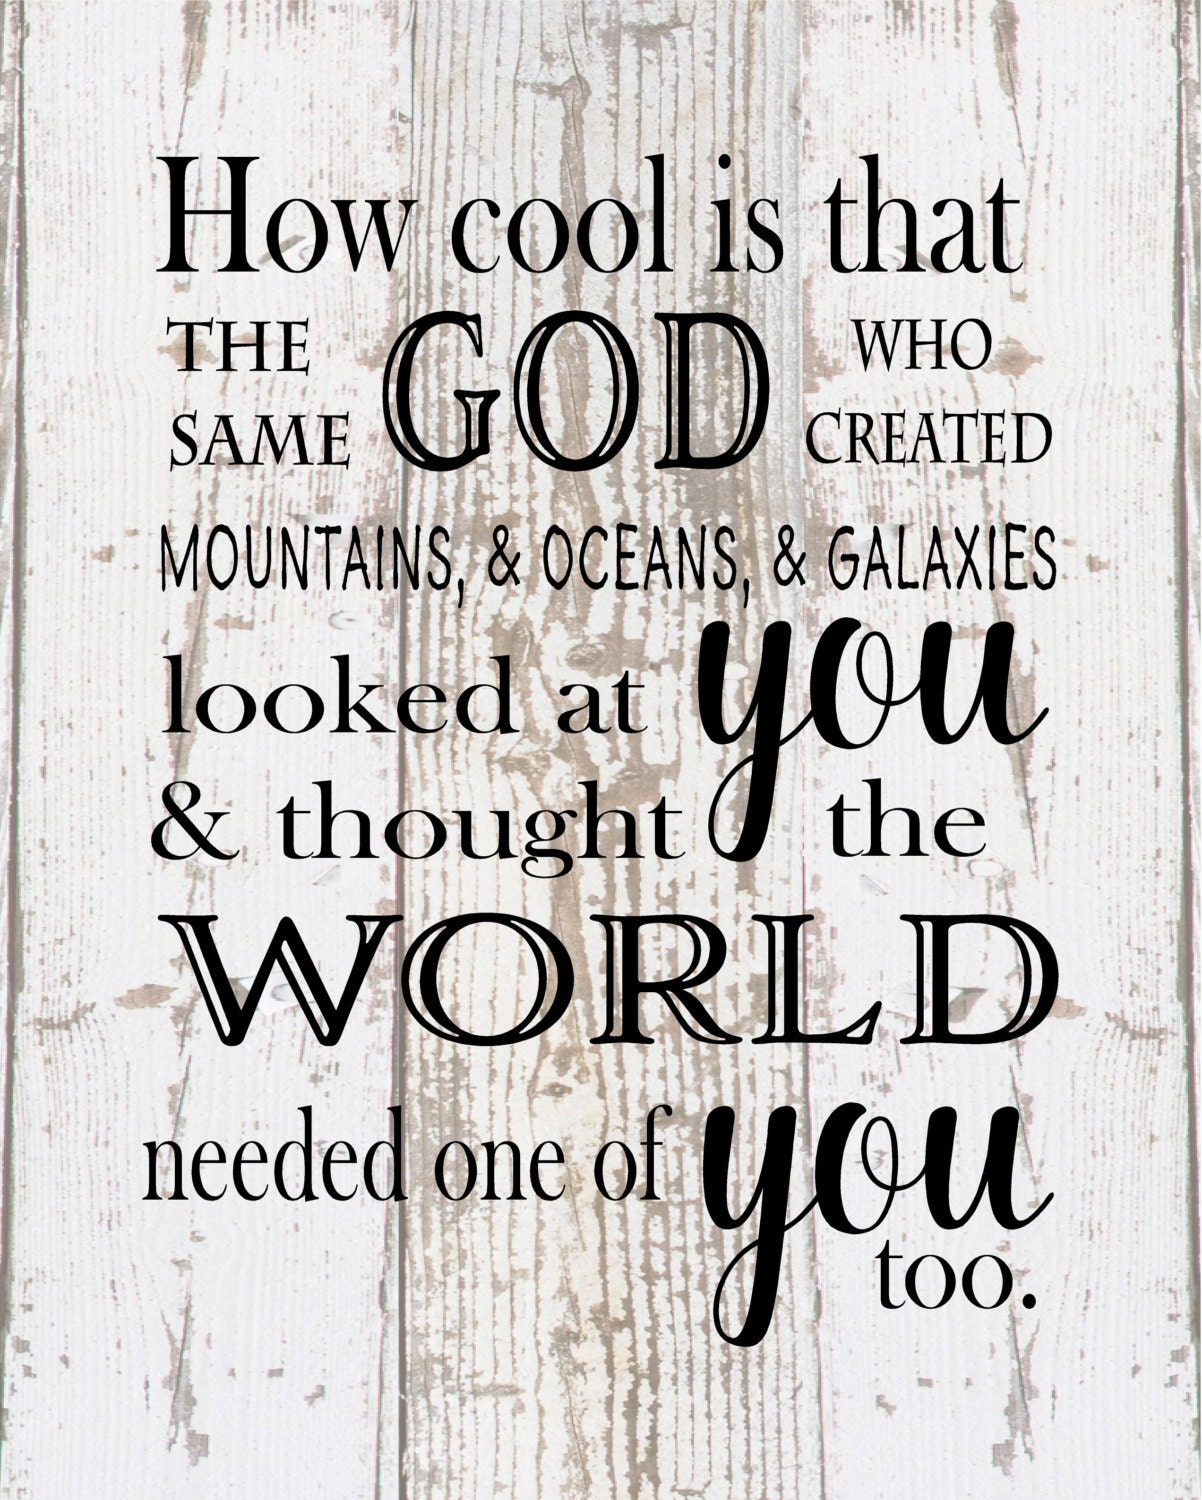 Birthday Party Quotes For Adults: How Cool Is That God Created Galaxies And Thought World